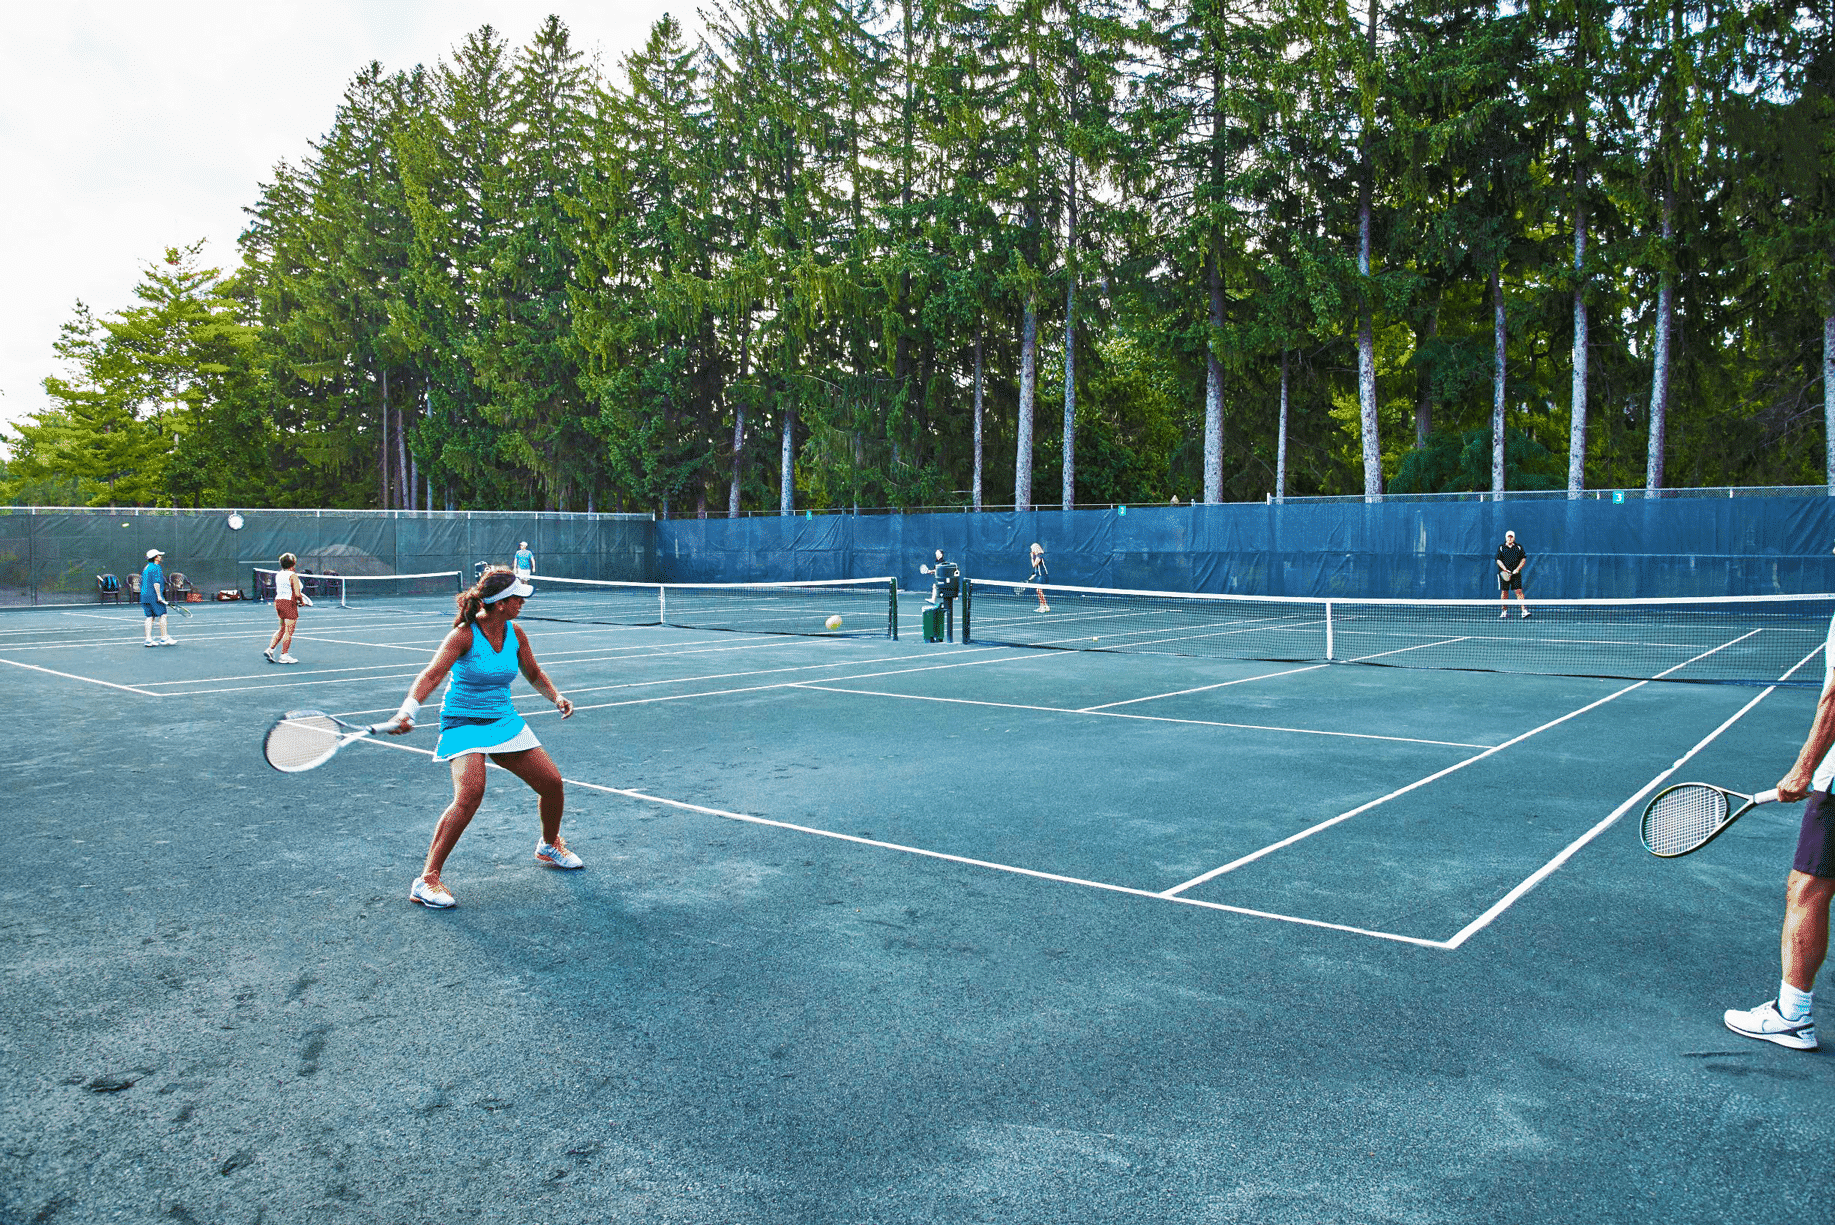 A lady playing tennis at the Thornhill ground on a large tennis court with other players